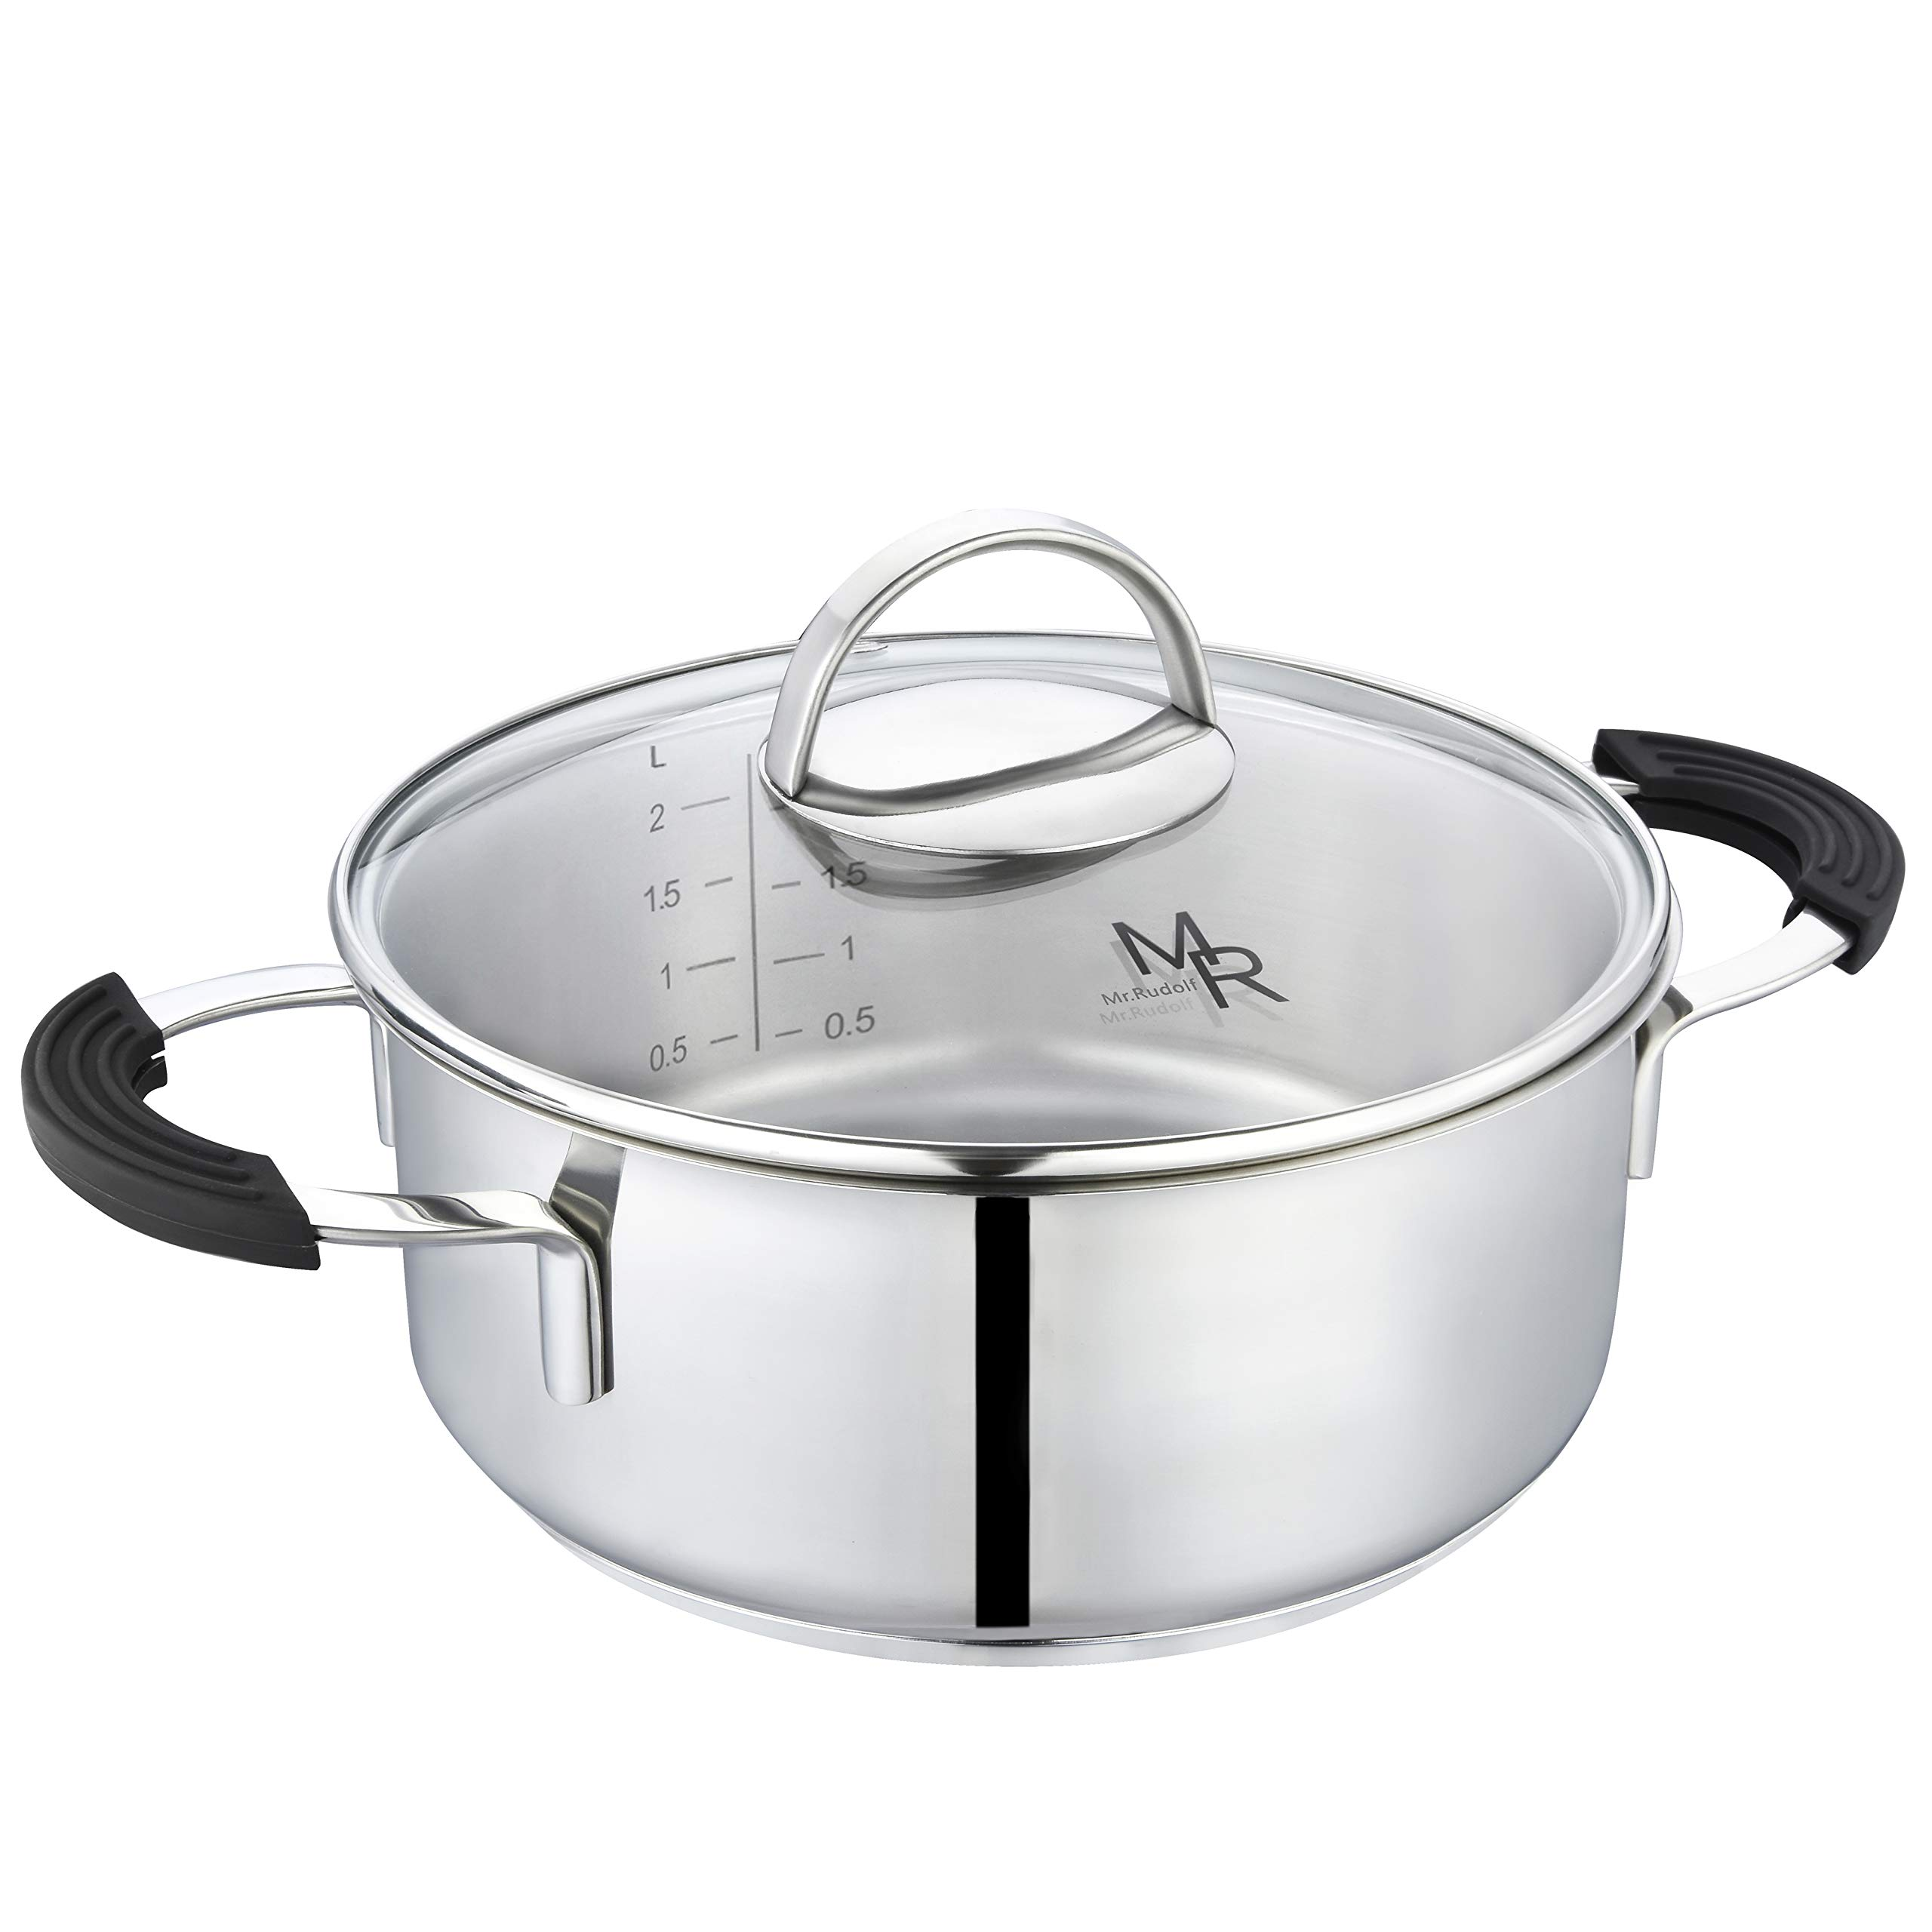 Mr Rudolf 2 Quart 18/10 Stainless Steel 2 Handles Stock Pot with Glass Lid Dishwasher Safe PFOA Free Casserole Stockpots 20cm 2 Liter Dutch Oven by Mr Rudolf